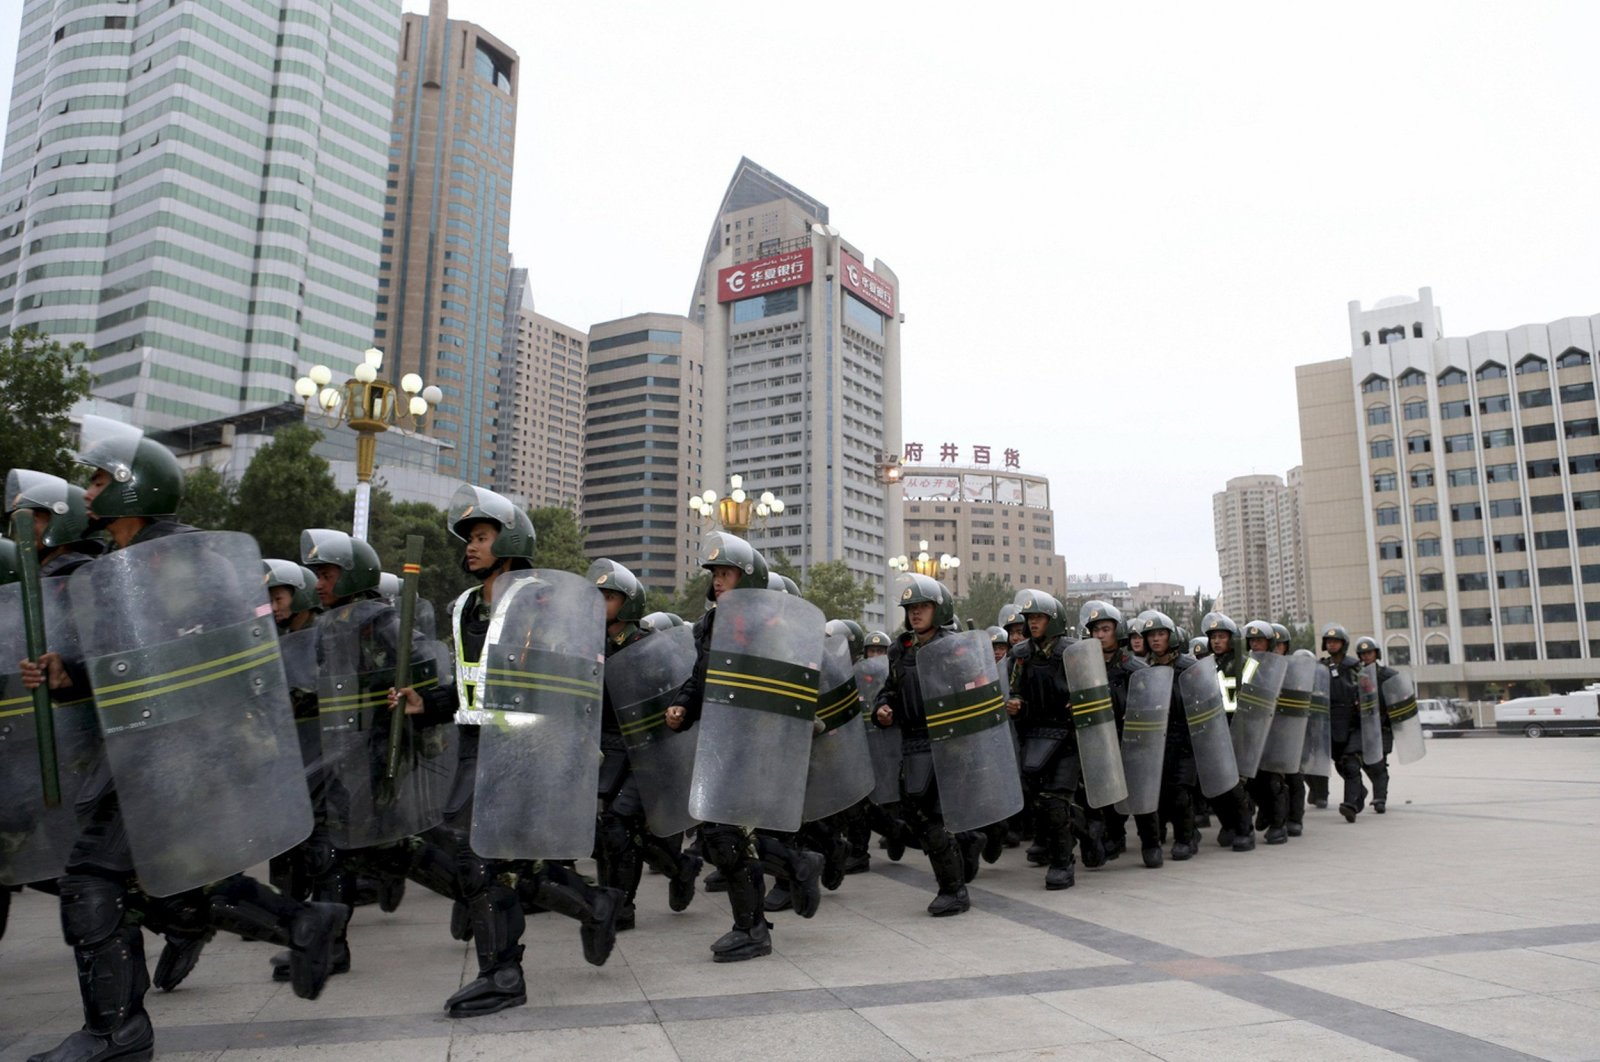 Armed paramilitary policemen run in formation during a gathering to mobilize security operations in Urumqi, Xinjiang Uighur Autonomous Region, June 29, 2013. (Reuters Photo)